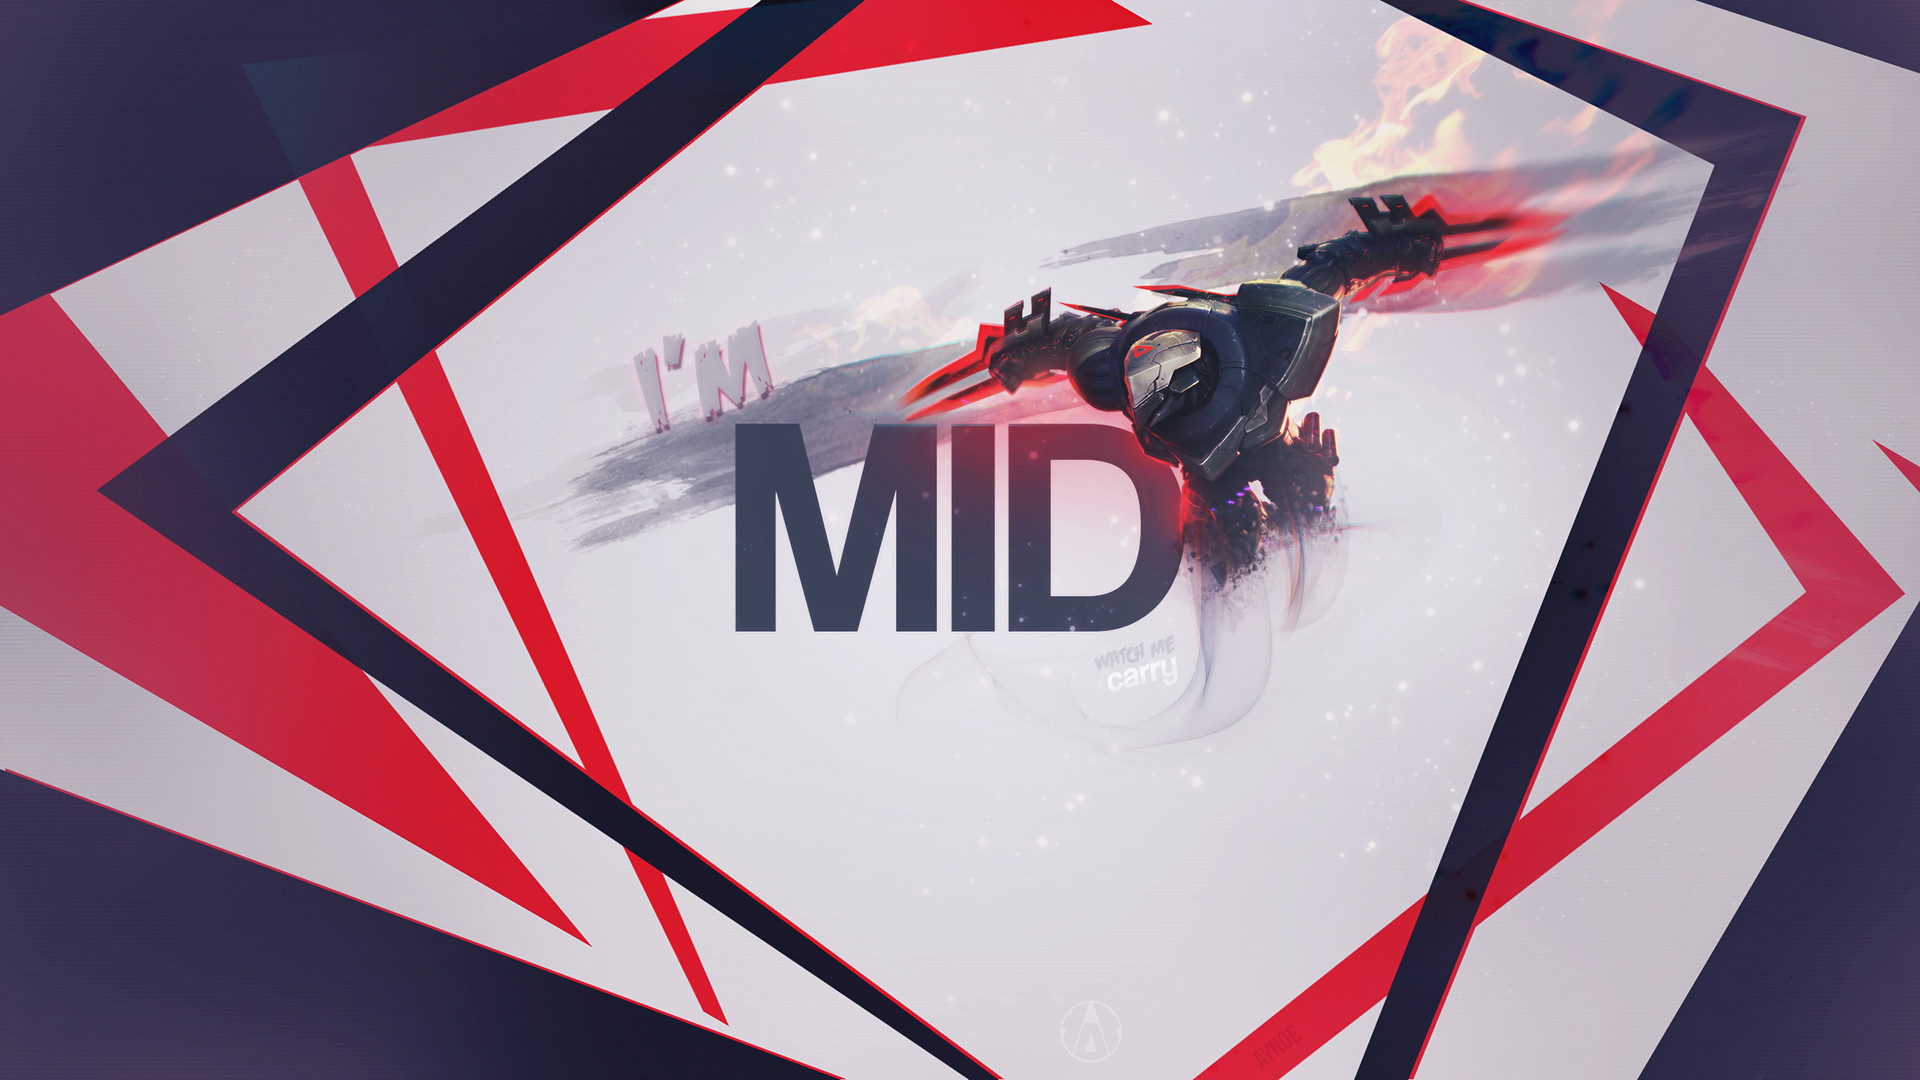 Here is the PROJECT Zed Wallpaper